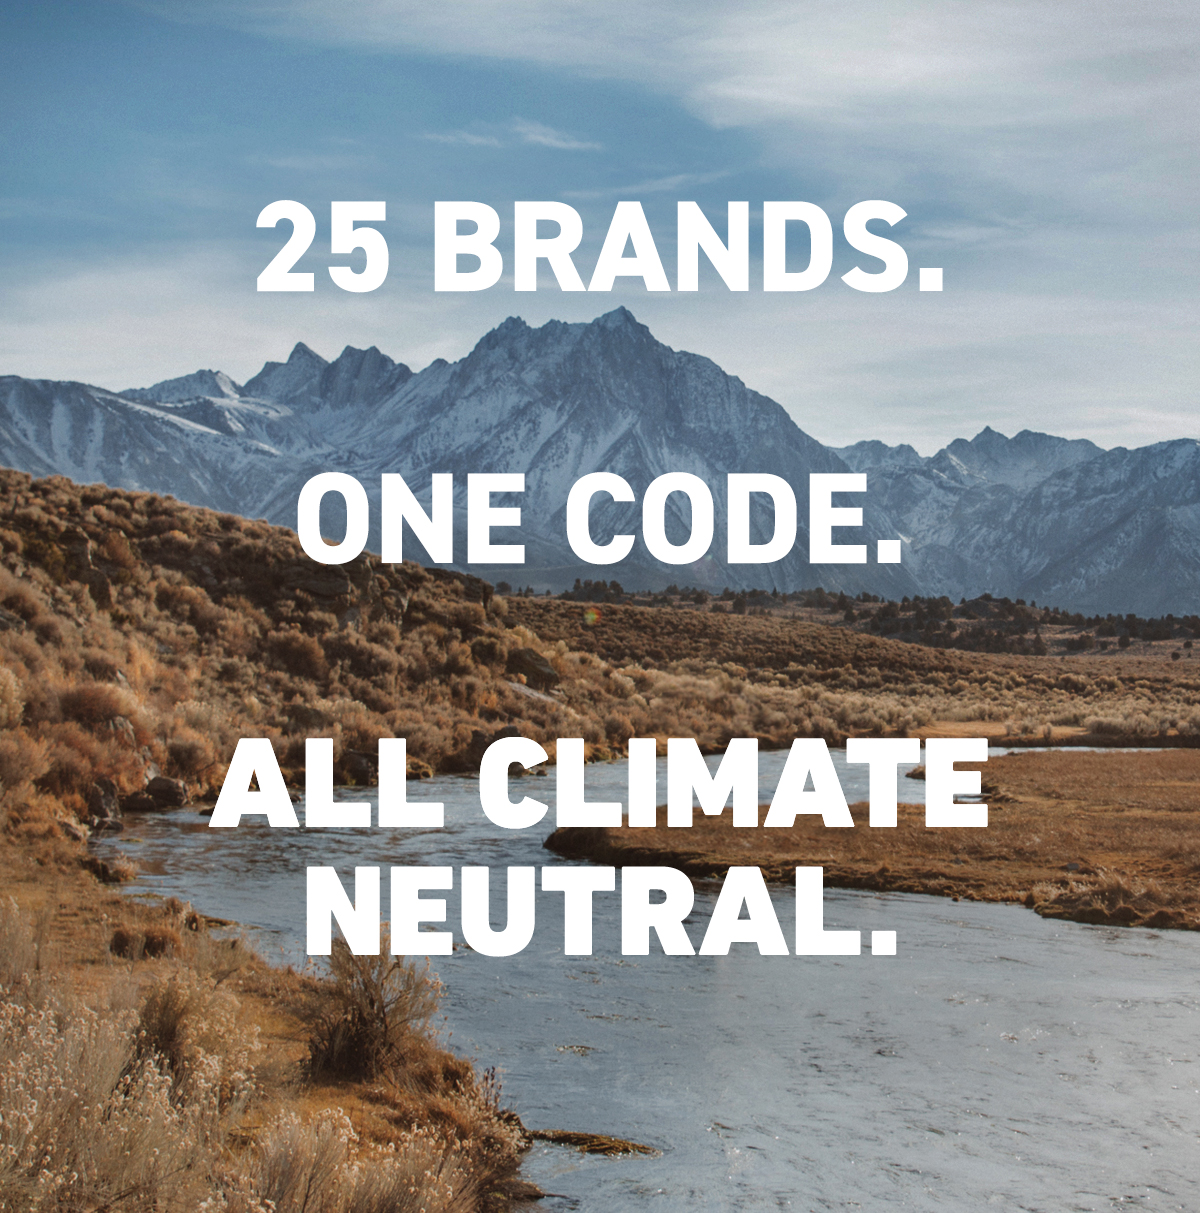 25 Brands. One Code. All Climate Neutral.